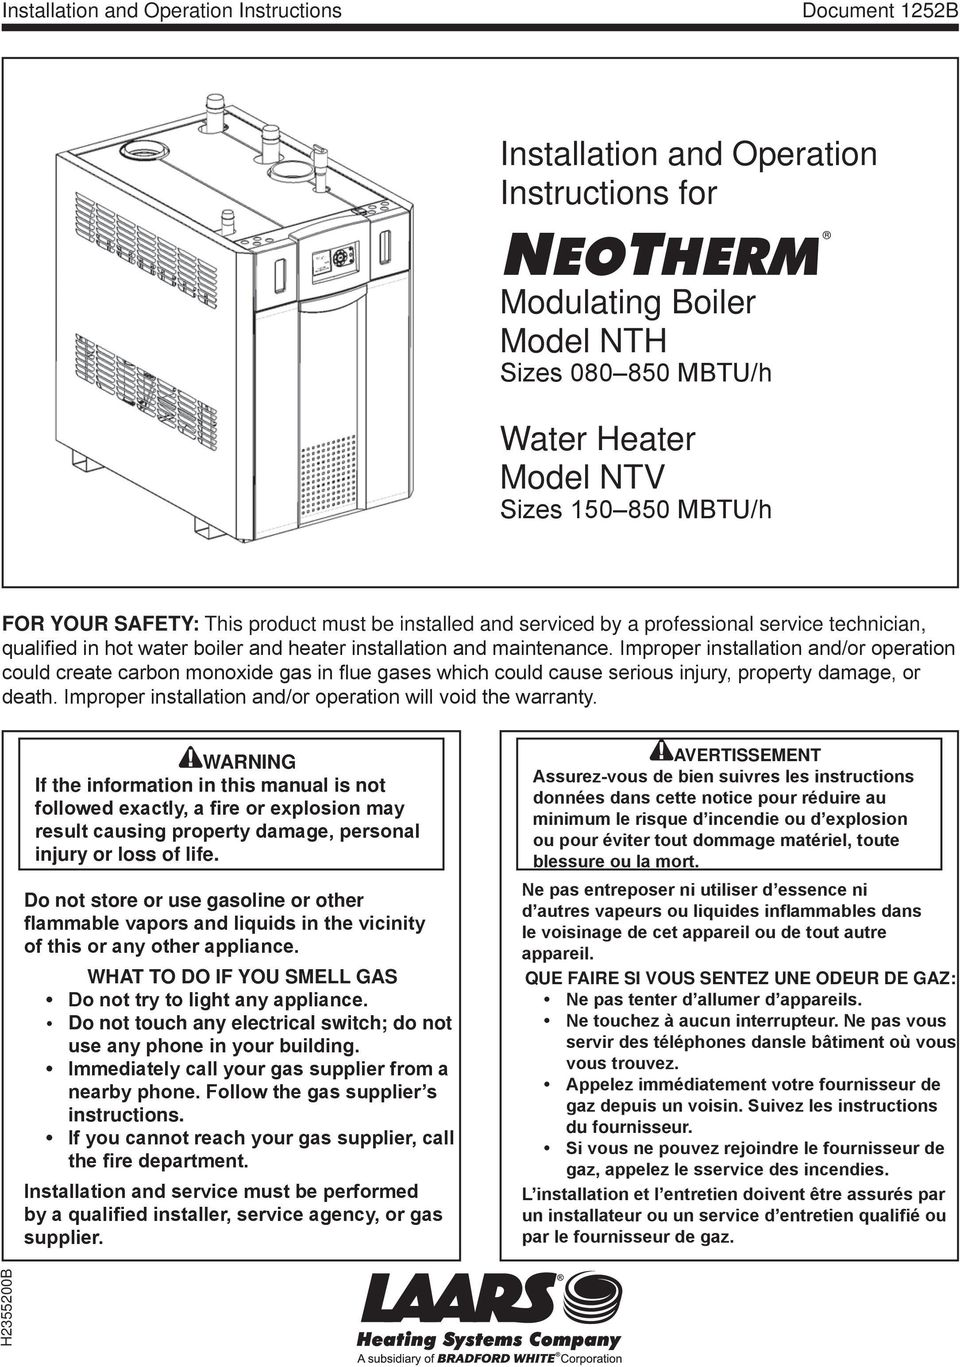 Neotherm Installation And Operation Instructions Modulating Boiler 850 Gas Furnace Schematic Improper Or Could Create Carbon Monoxide In Flue Gases Which